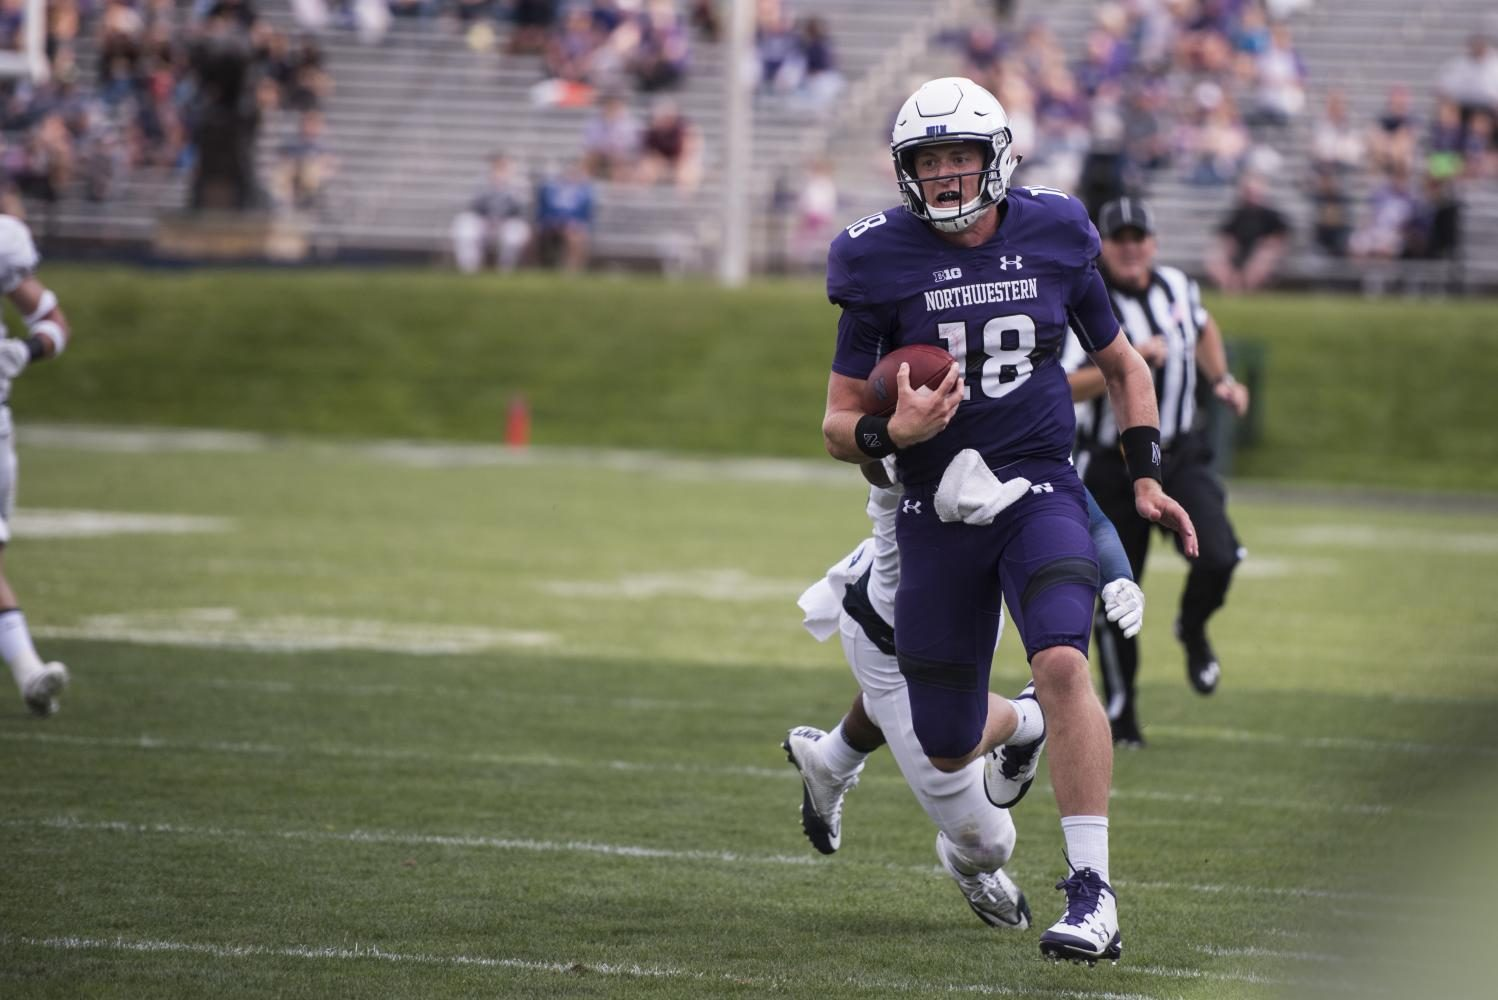 Clayton+Thorson+carries+the+ball.+The+junior+quarterback+tossed+for+352+yards+in+Northwestern%27s+win+over+Nevada+on+Saturday.+